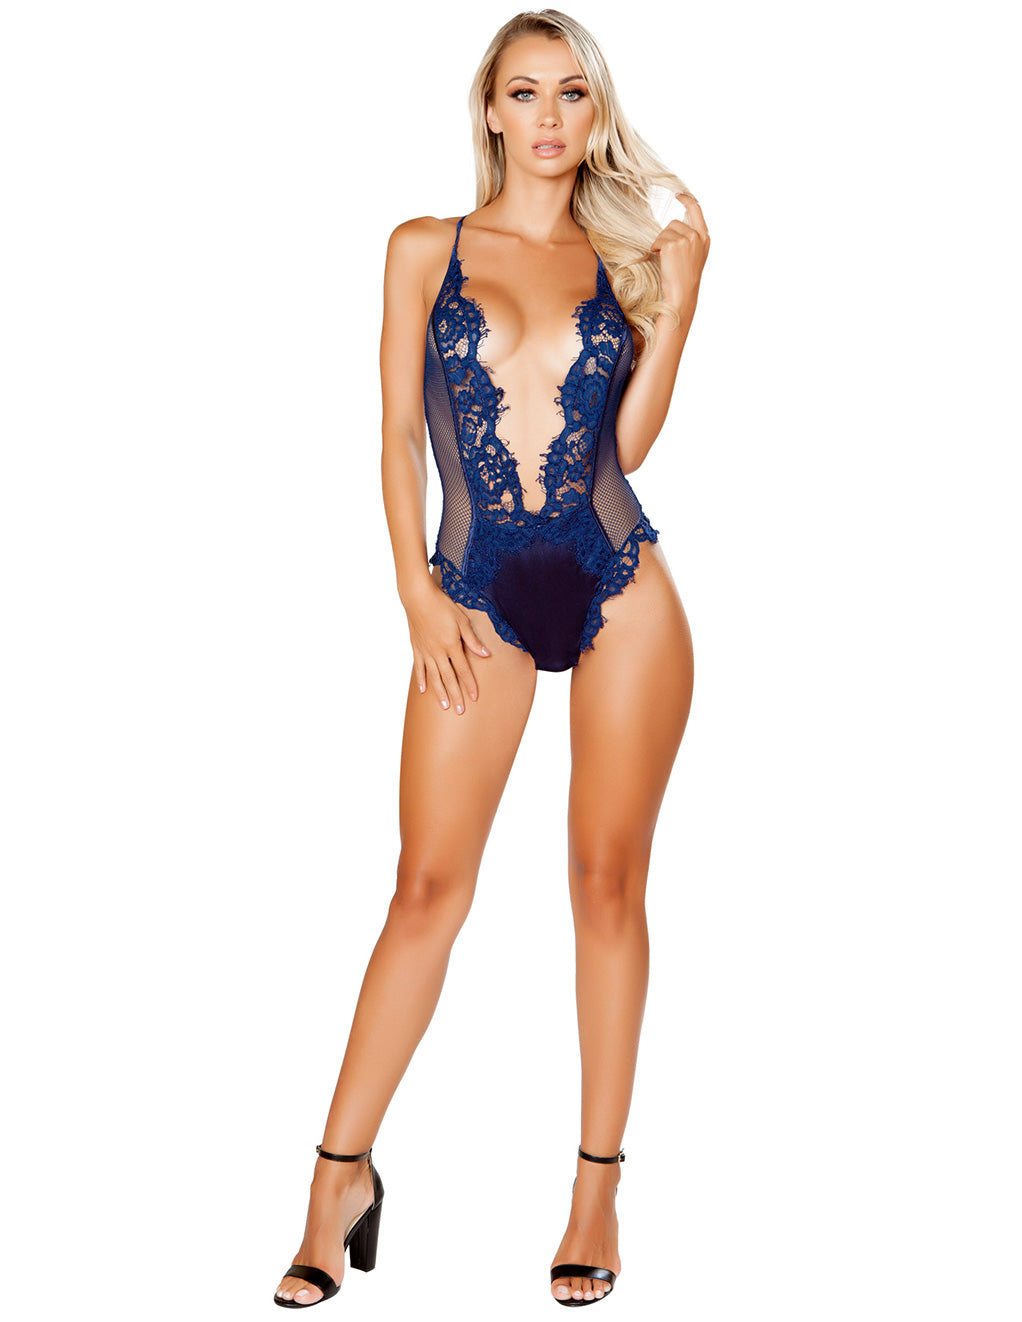 Black Satin & Eyelash Lace Deep V Teddy by Roma Costumes Navy Front